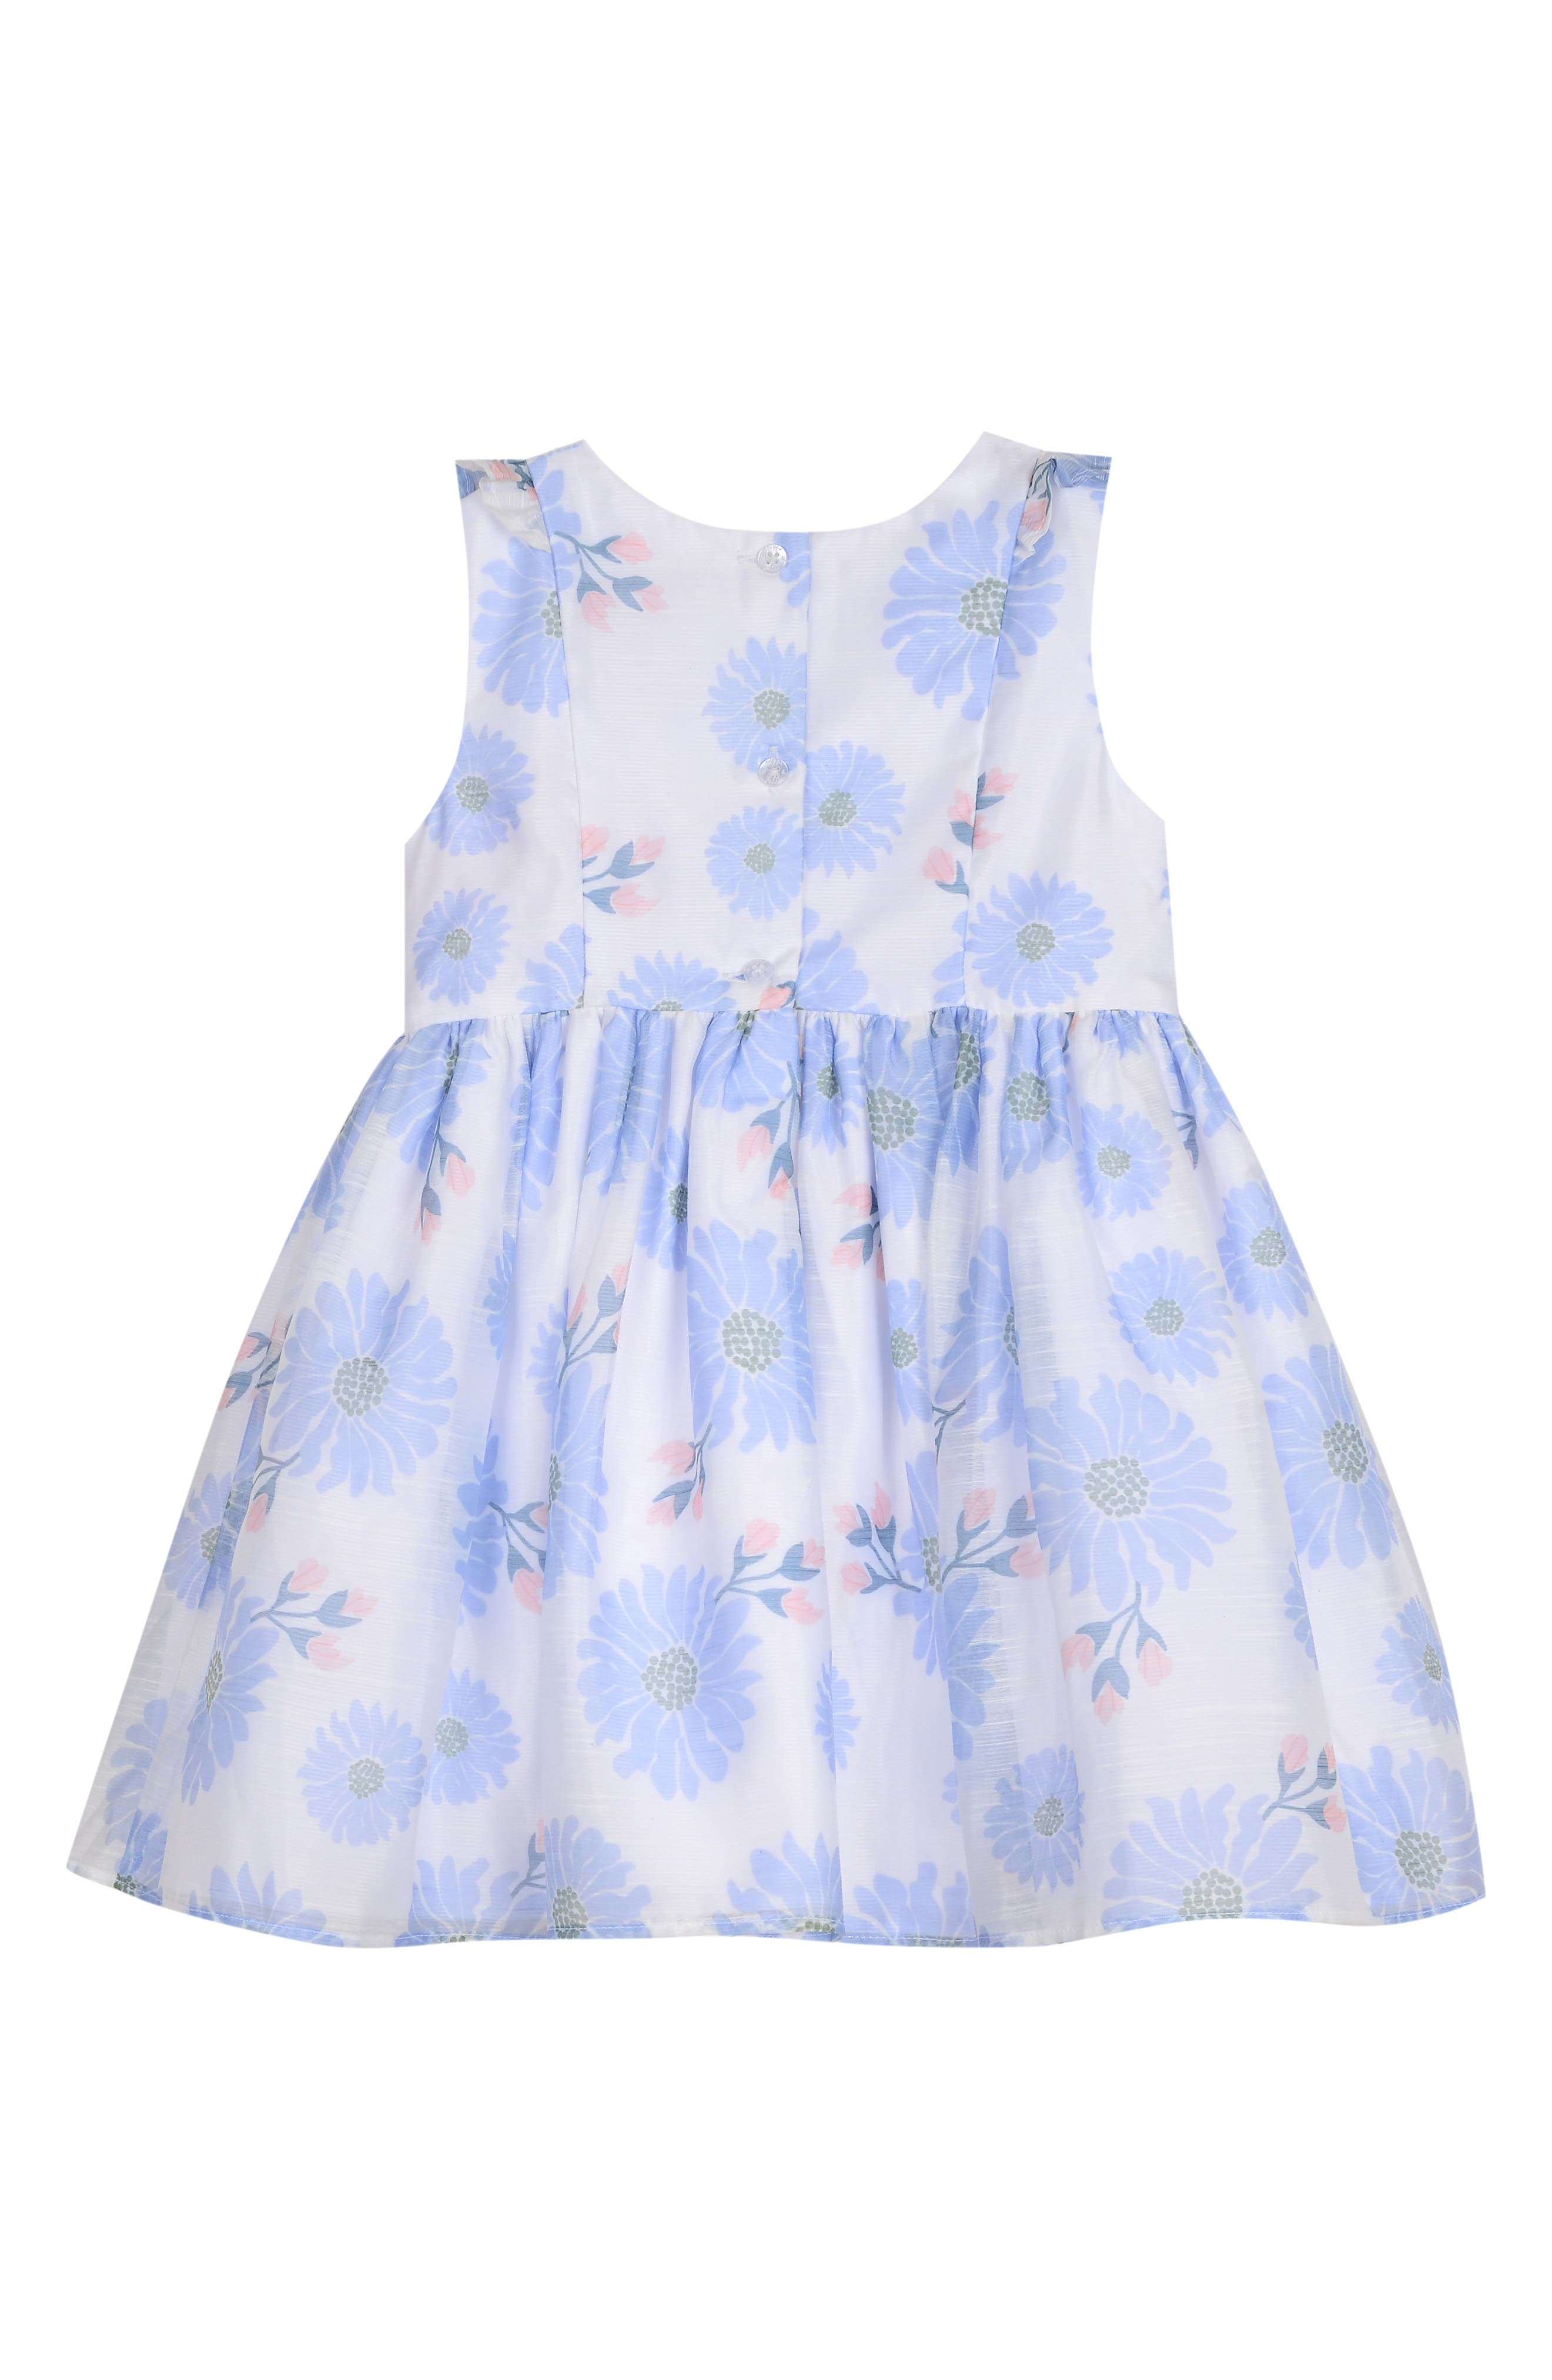 PIPPA & JULIE, Floral Bow Front Dress, Alternate thumbnail 2, color, WHITE/ BLUE